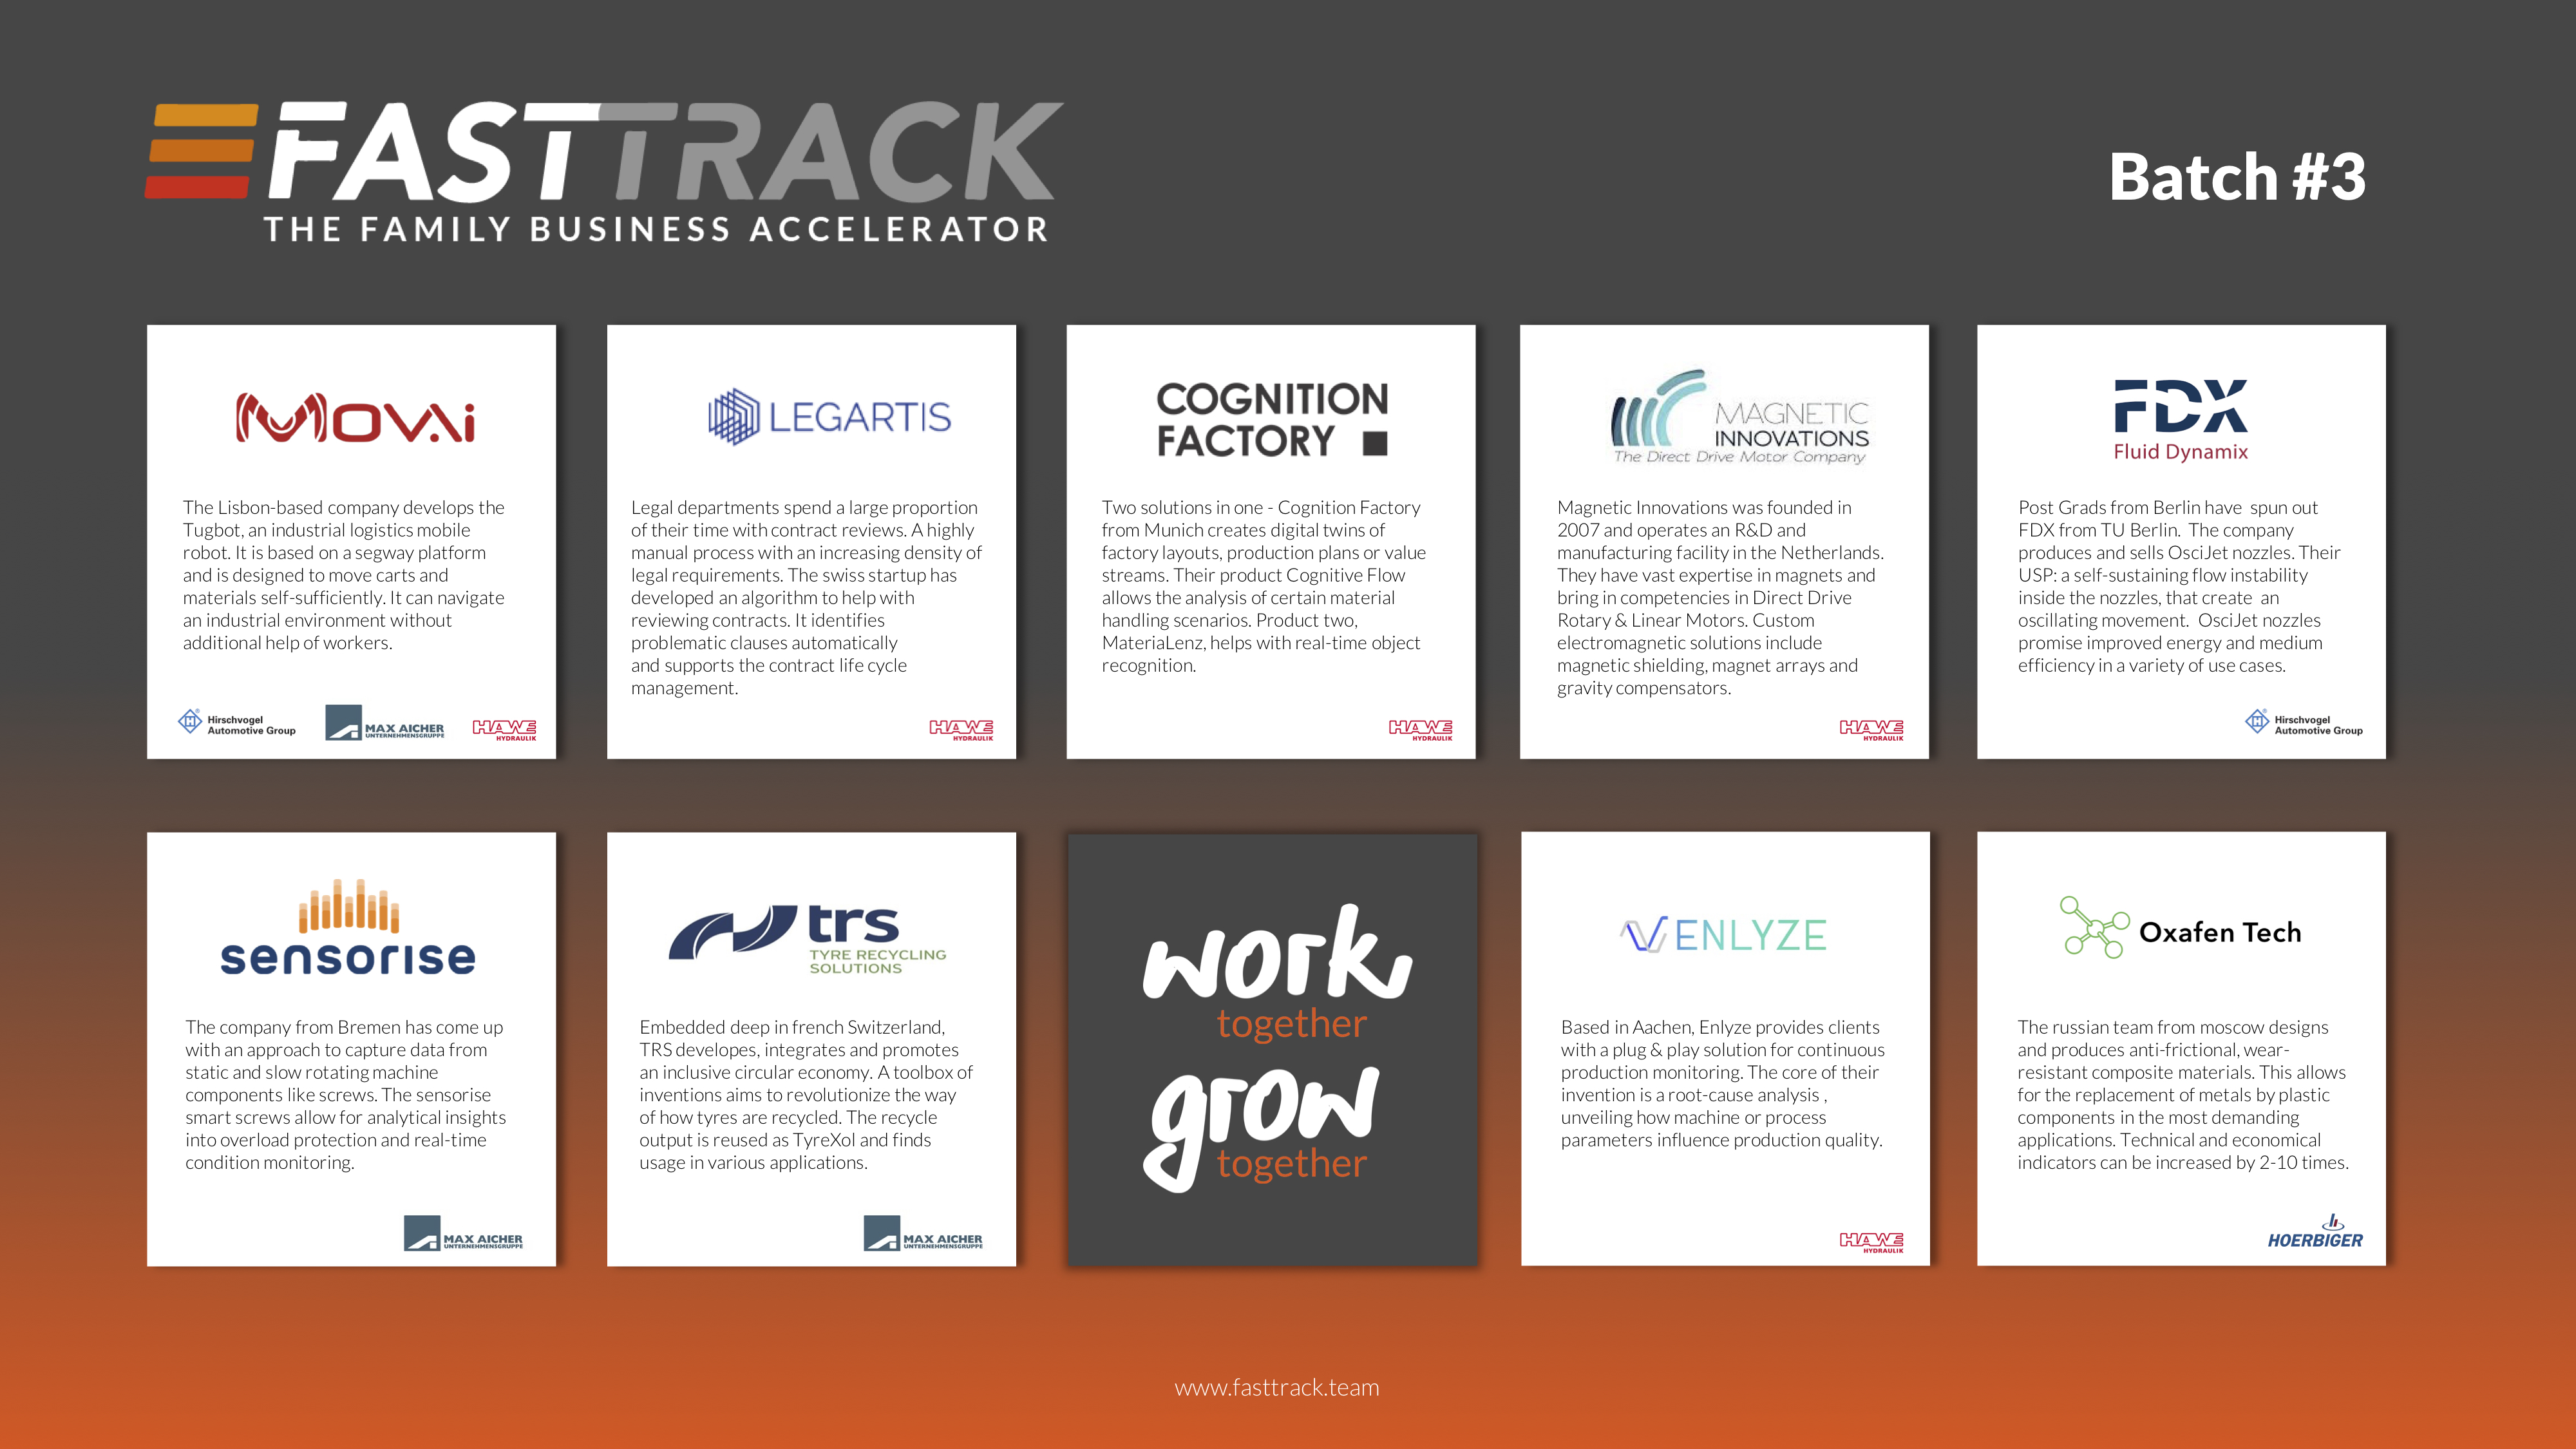 Fasttrack-Batch-3